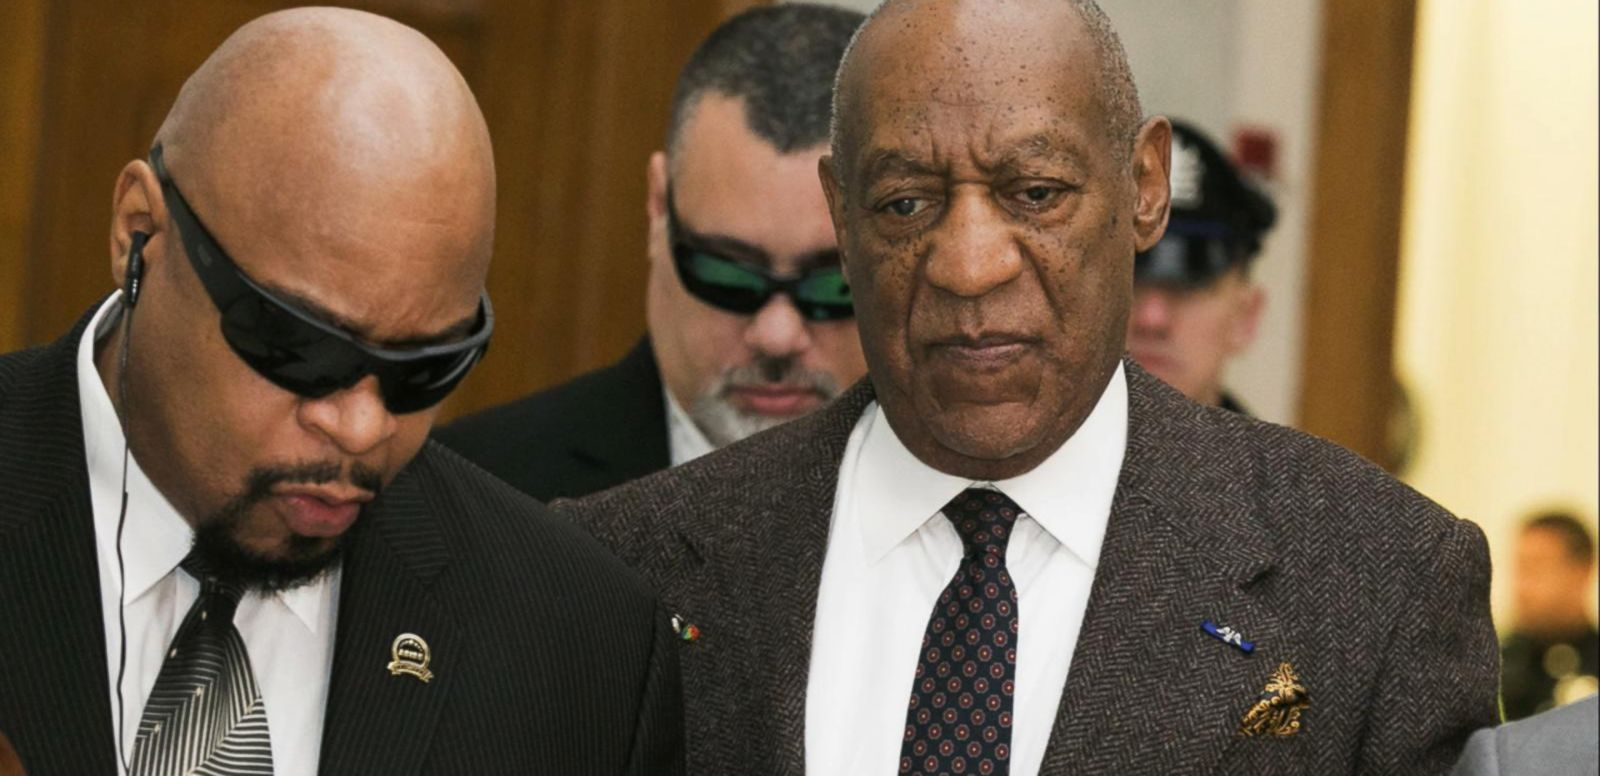 VIDEO: Bill Cosby Ordered to Stand Trial on Charges of Sexual Assault